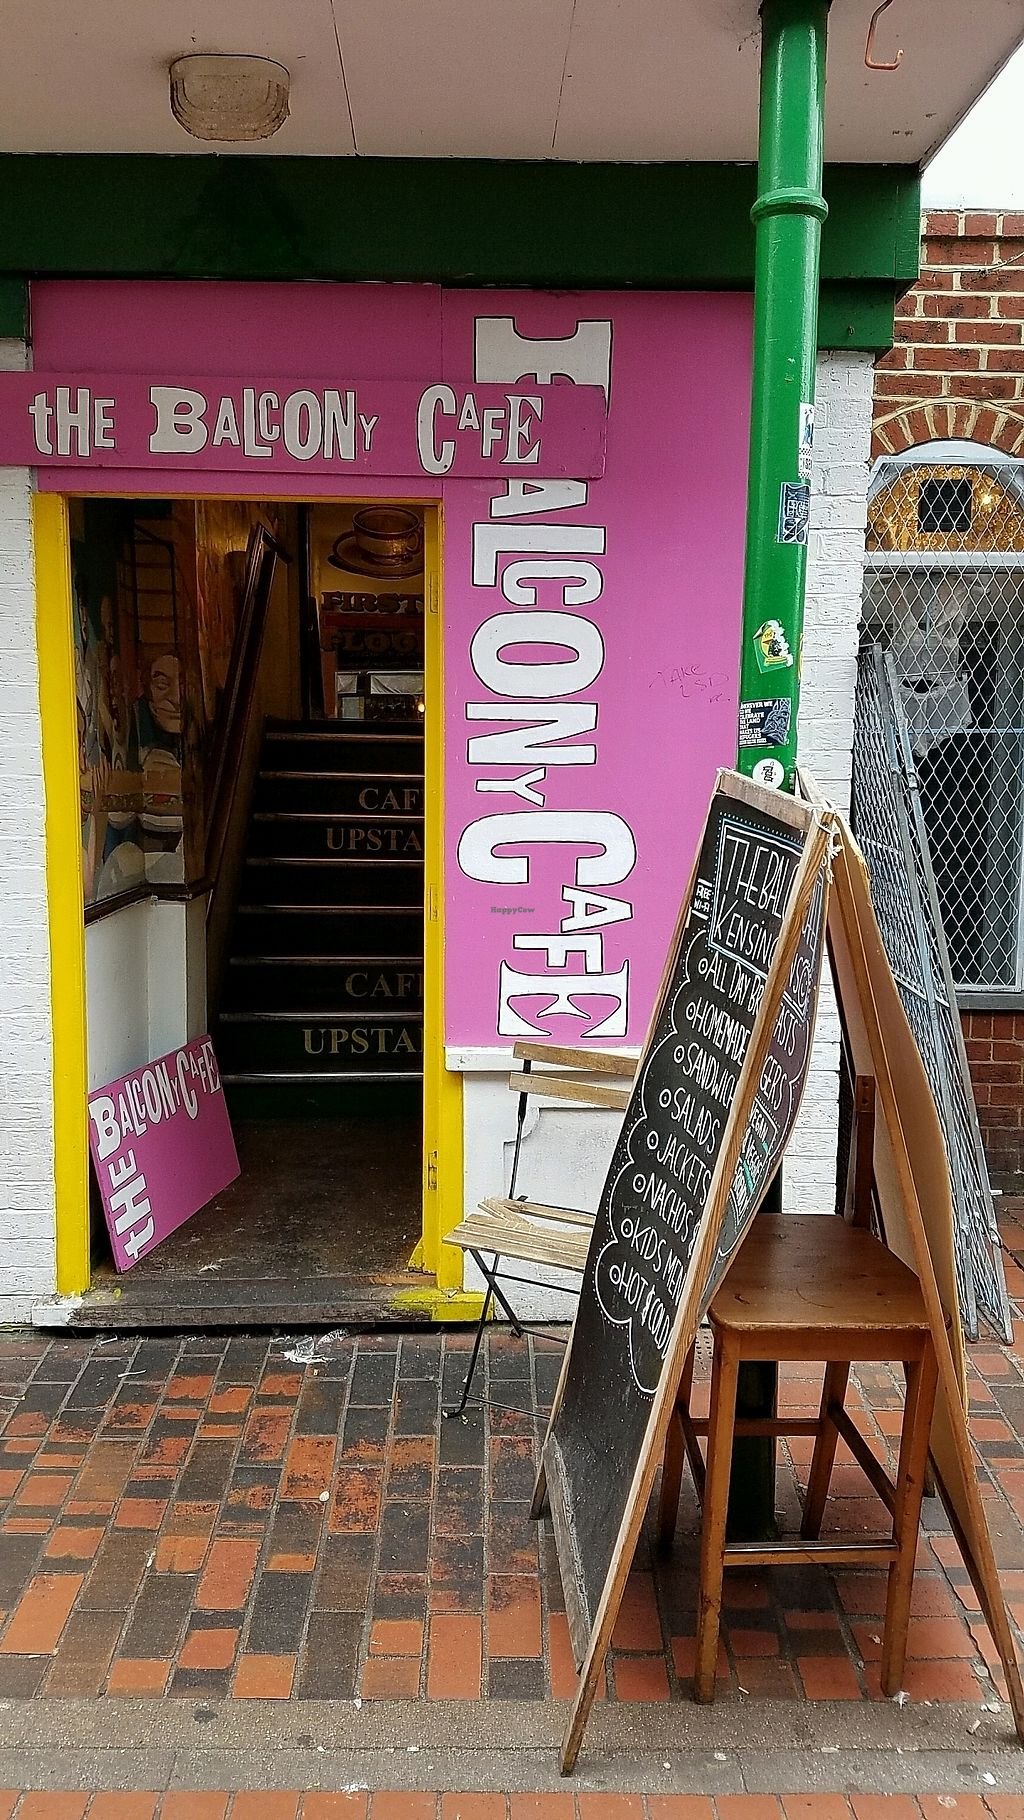 """Photo of Kensingtons The Balcony Cafe  by <a href=""""/members/profile/eric"""">eric</a> <br/>entrance <br/> October 25, 2017  - <a href='/contact/abuse/image/87583/318657'>Report</a>"""